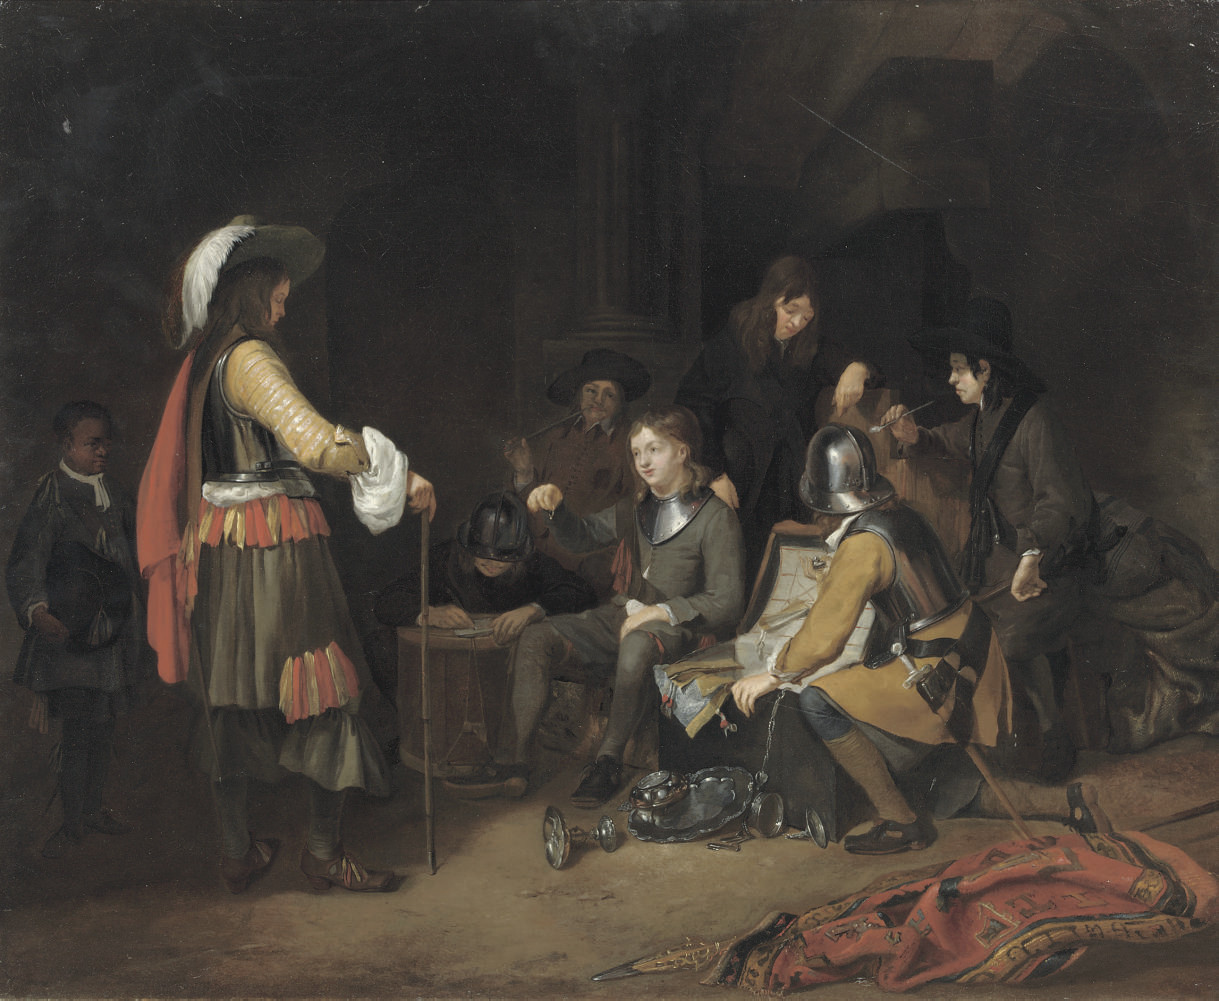 Soldiers dividing booty in a guardroom interior